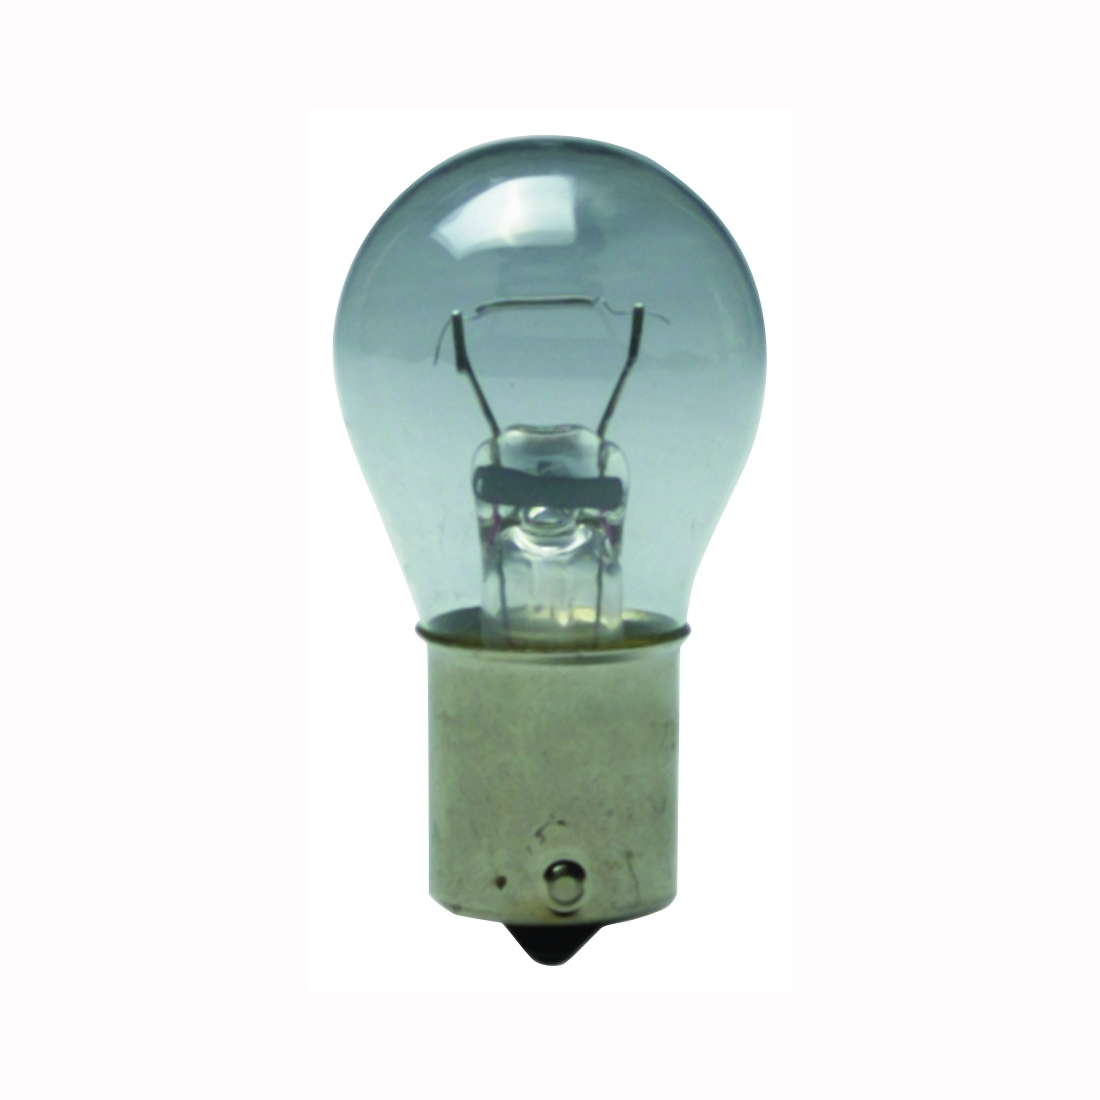 Picture of EIKO 1156-2BP Lamp, 12.8 V, S8 Lamp, Single Contact Base